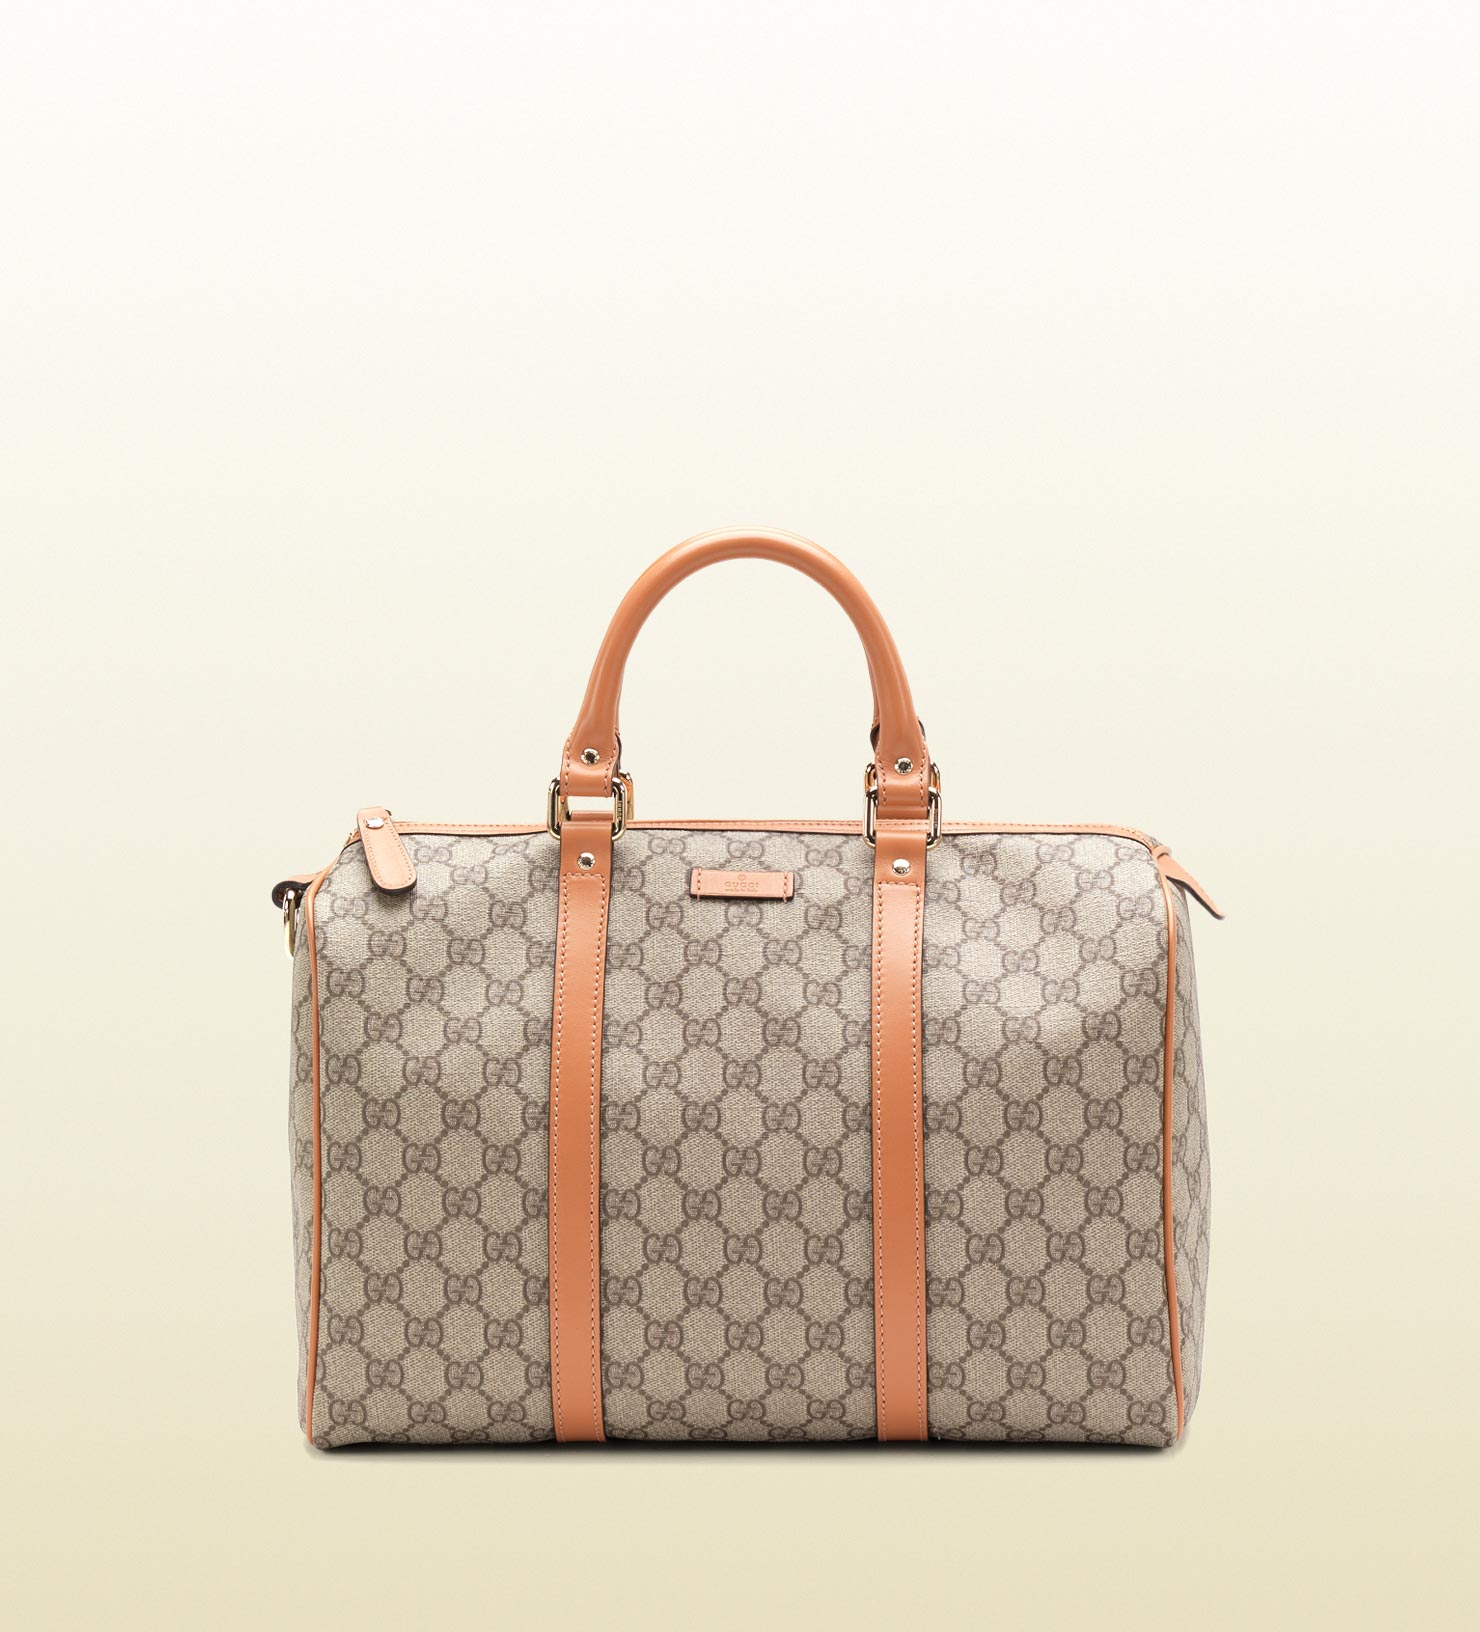 gucci bags designs for women and girls